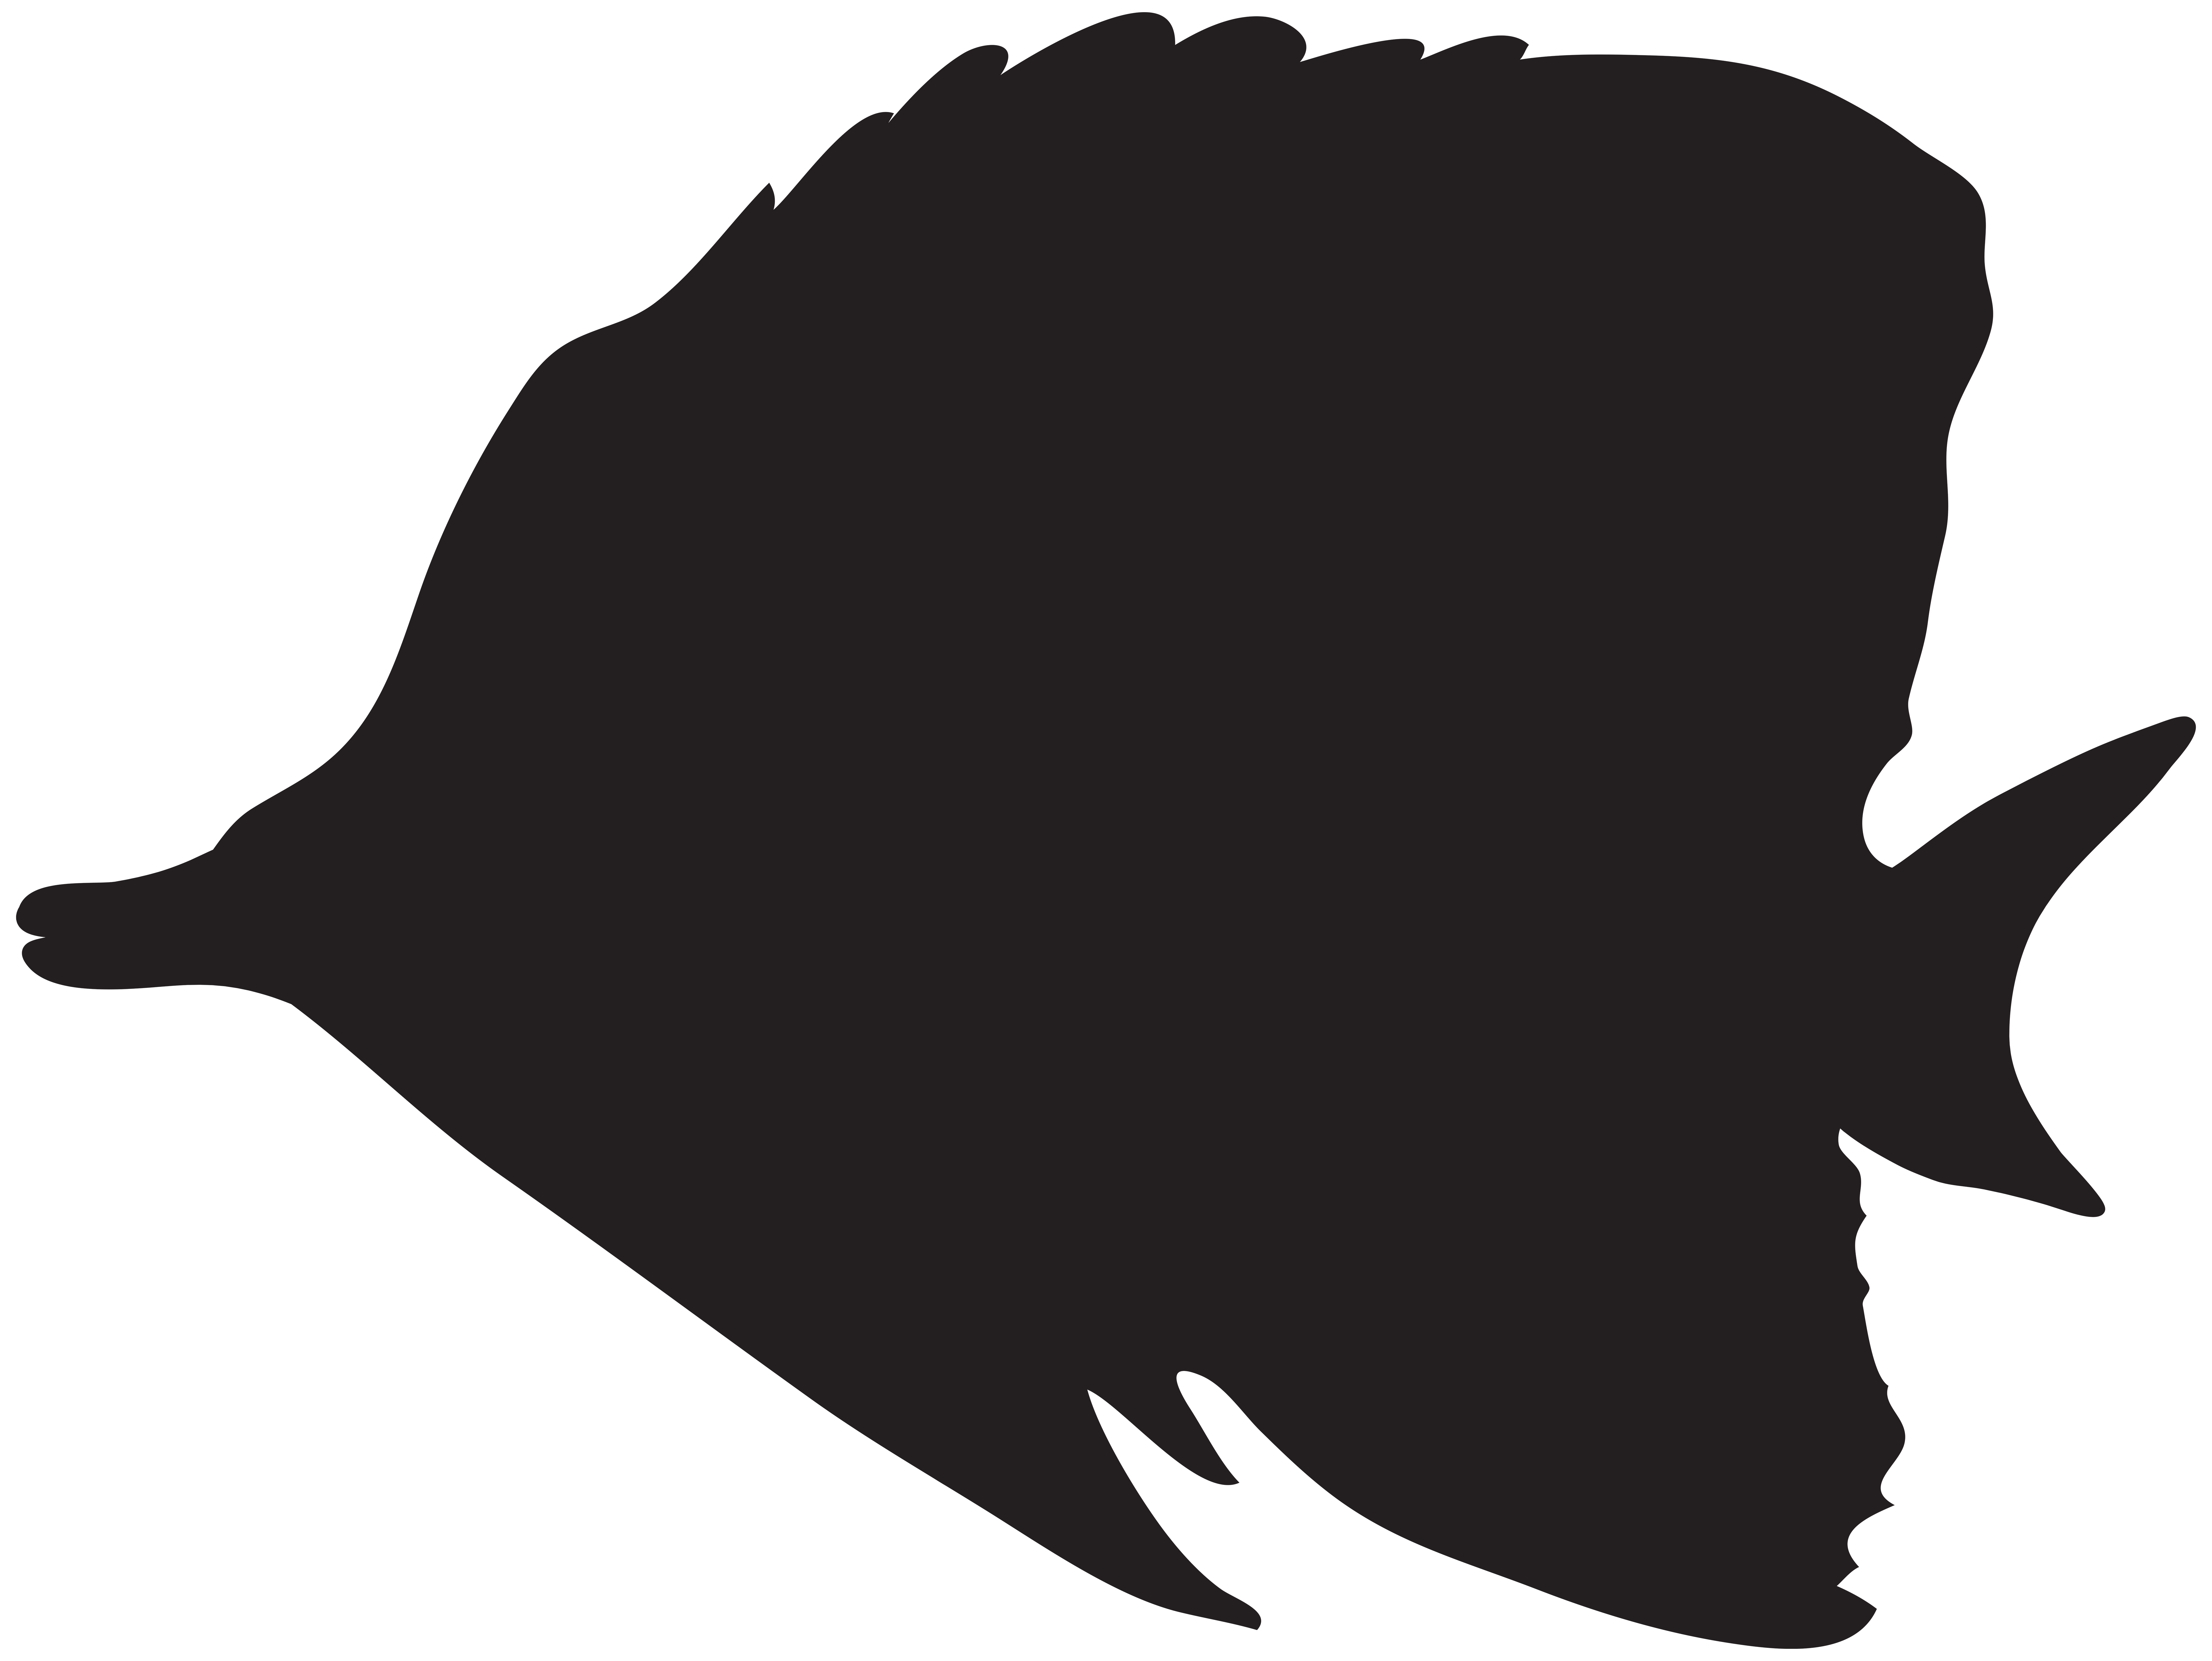 Fish silhouette png. Clip art image gallery